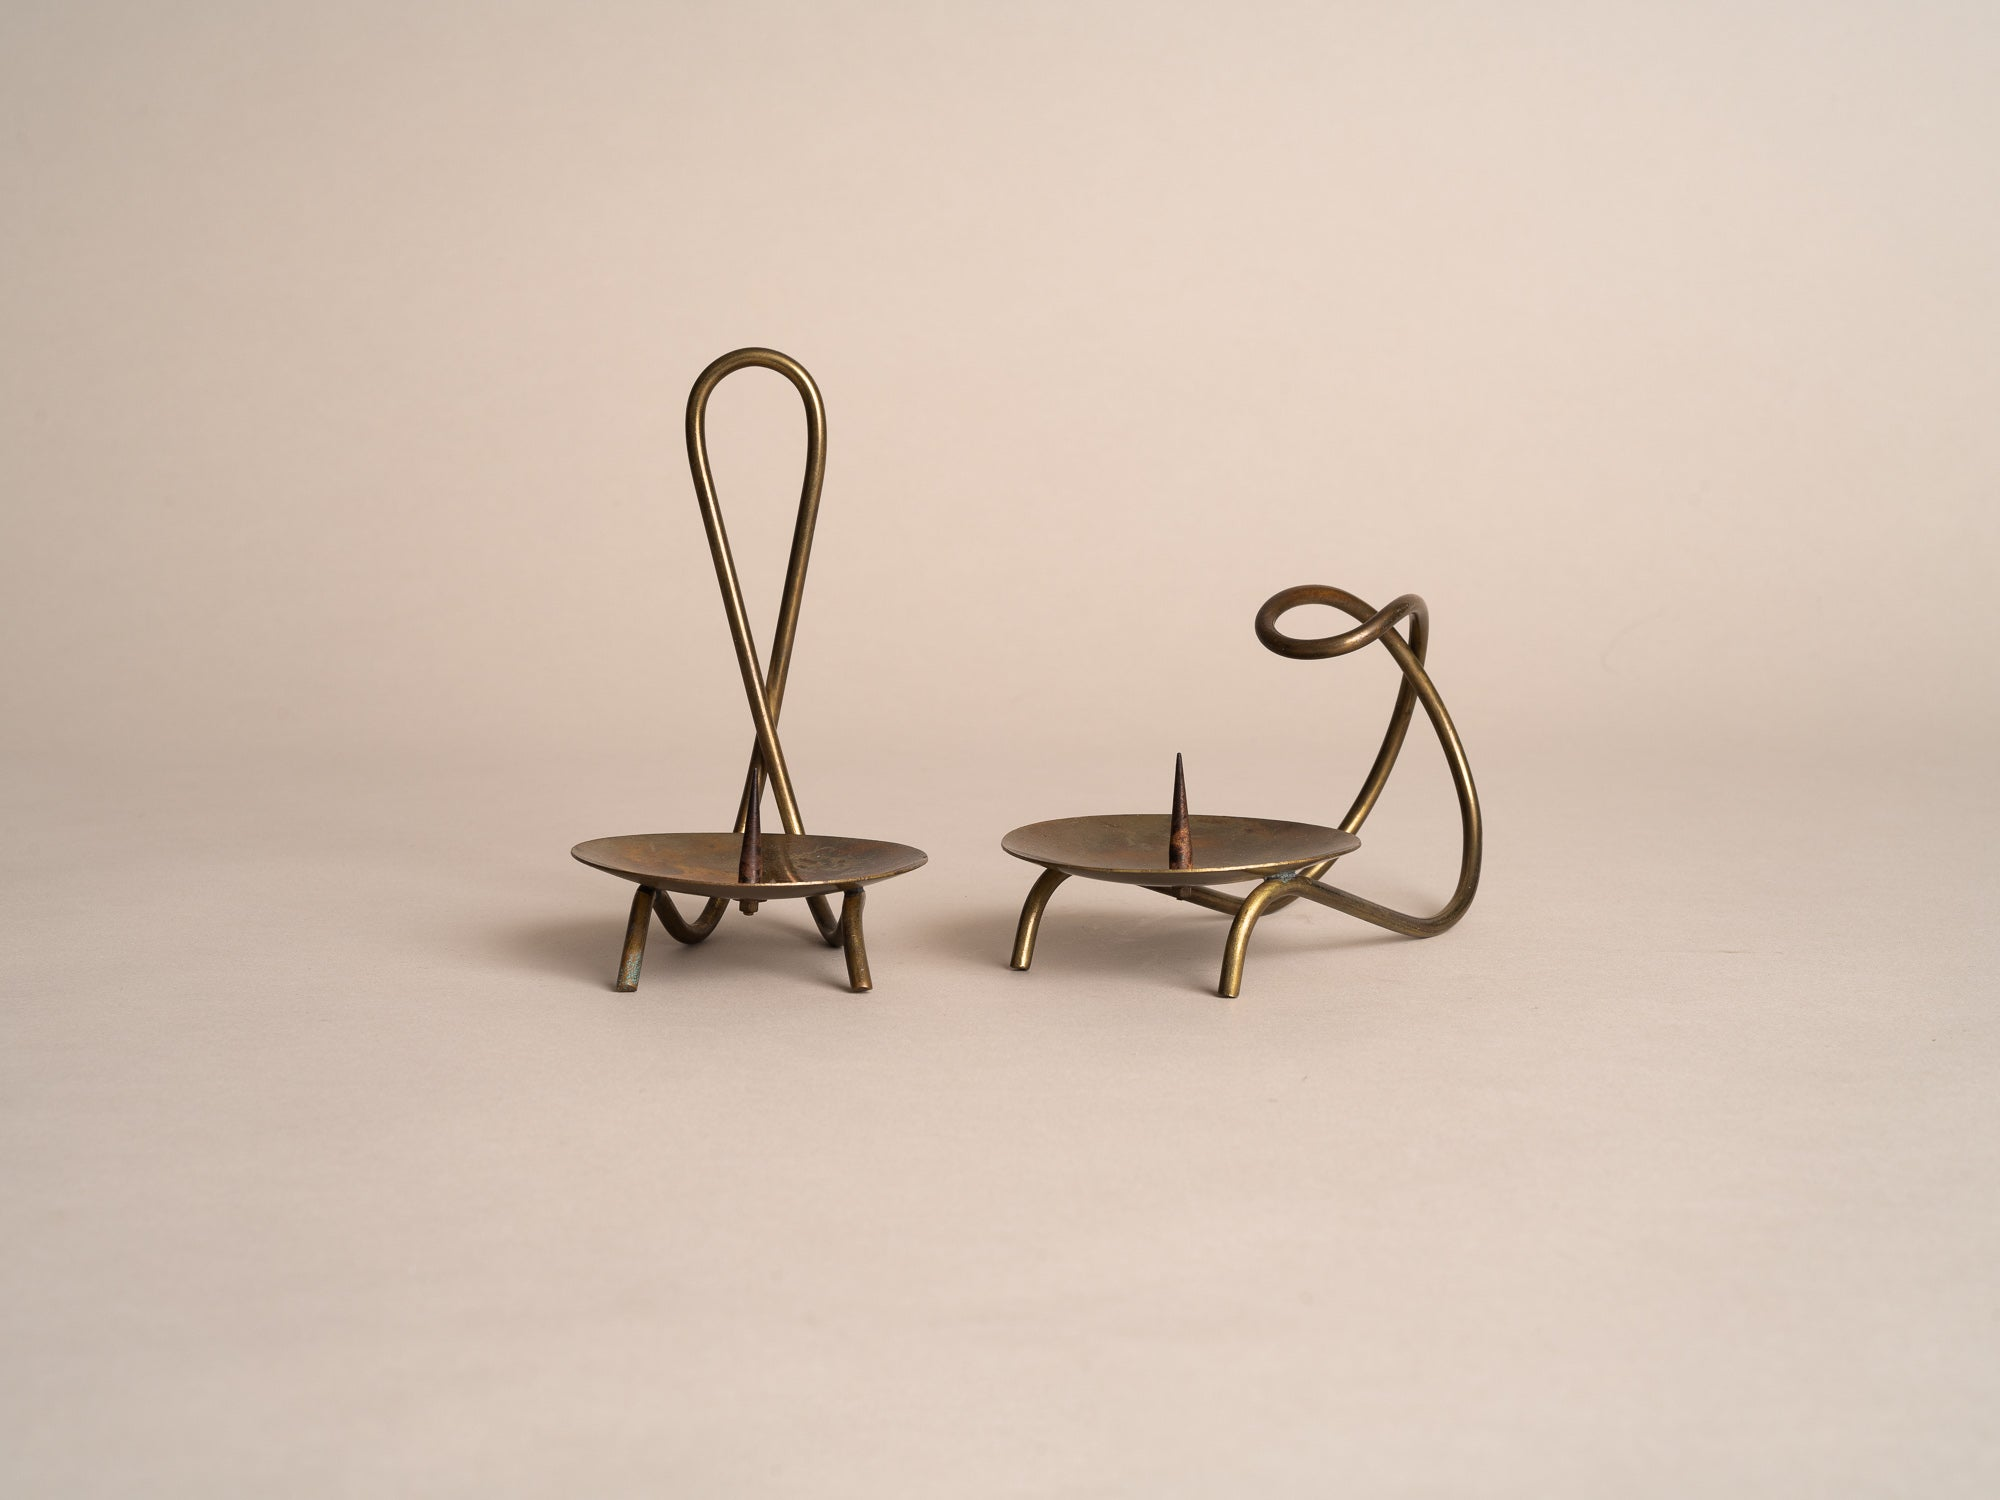 Ensemble de deux bougeoirs en laiton, style d'Hans Jensen, Danemark (vers 1950)..set of two brass candle holder in the style of Hans Jensen, Denmark (circa 1950)